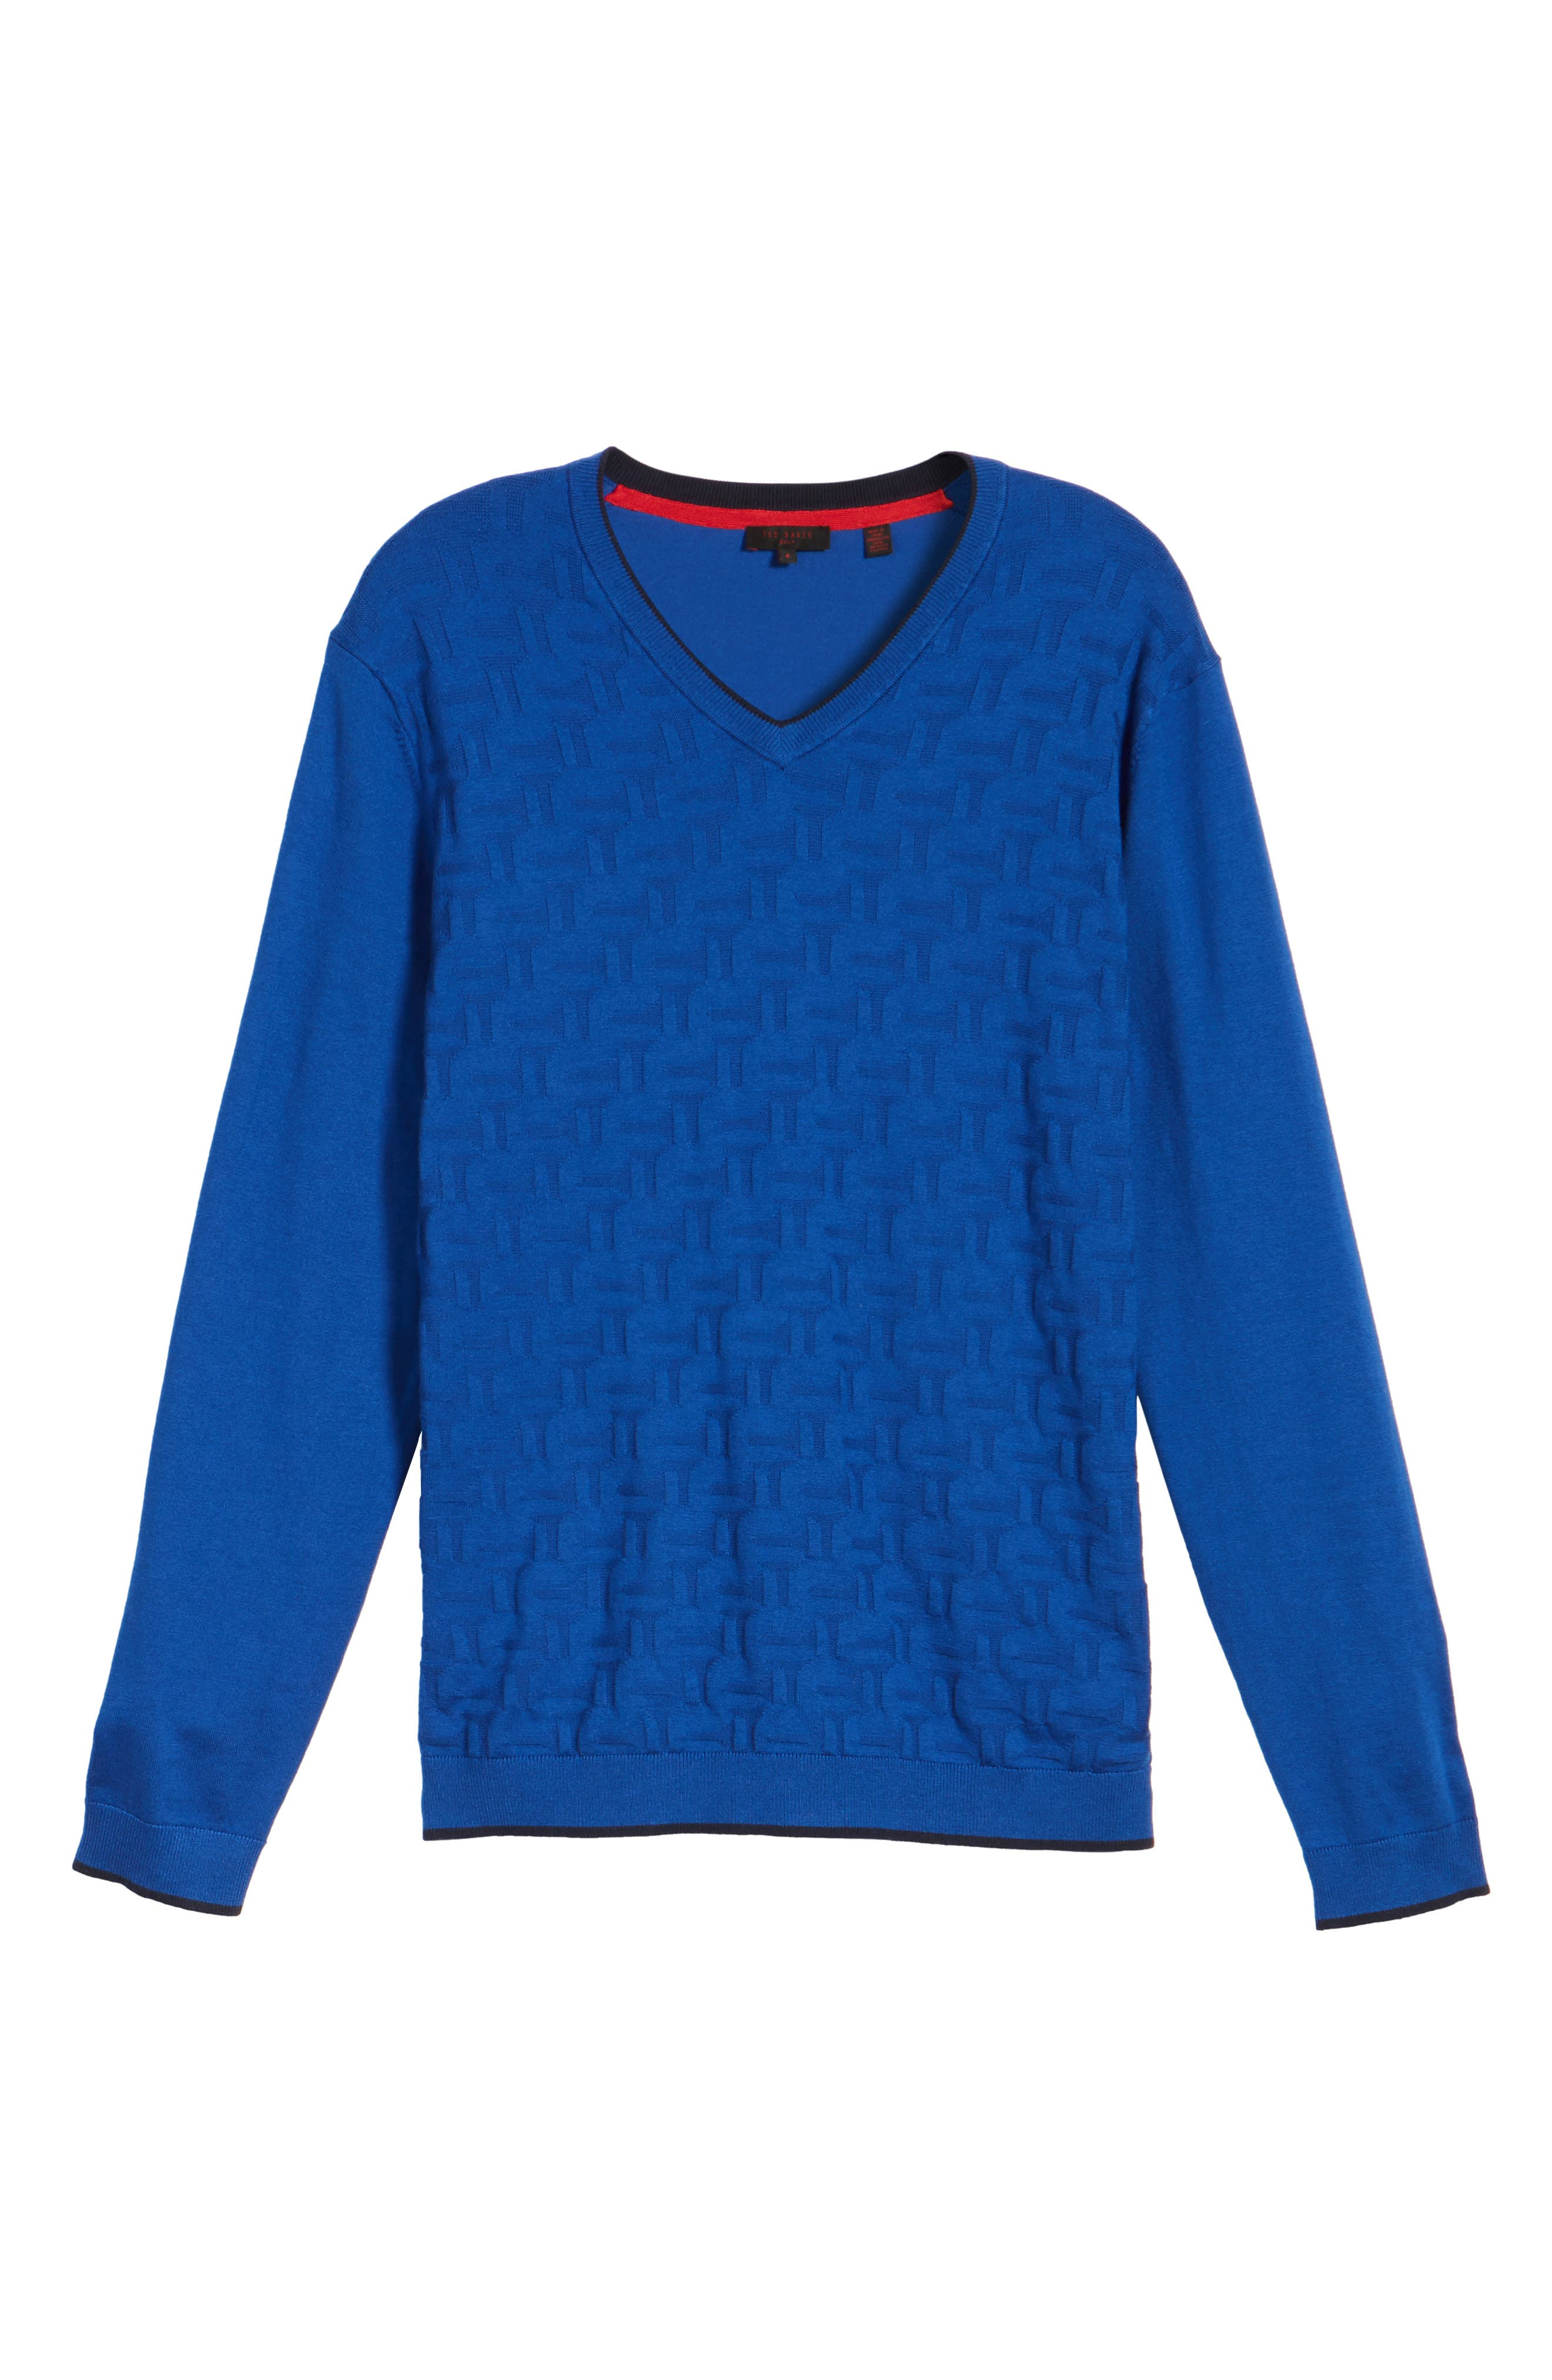 Armstro Tipped Golf Tee Sweater,                             Alternate thumbnail 5, color,                             Blue